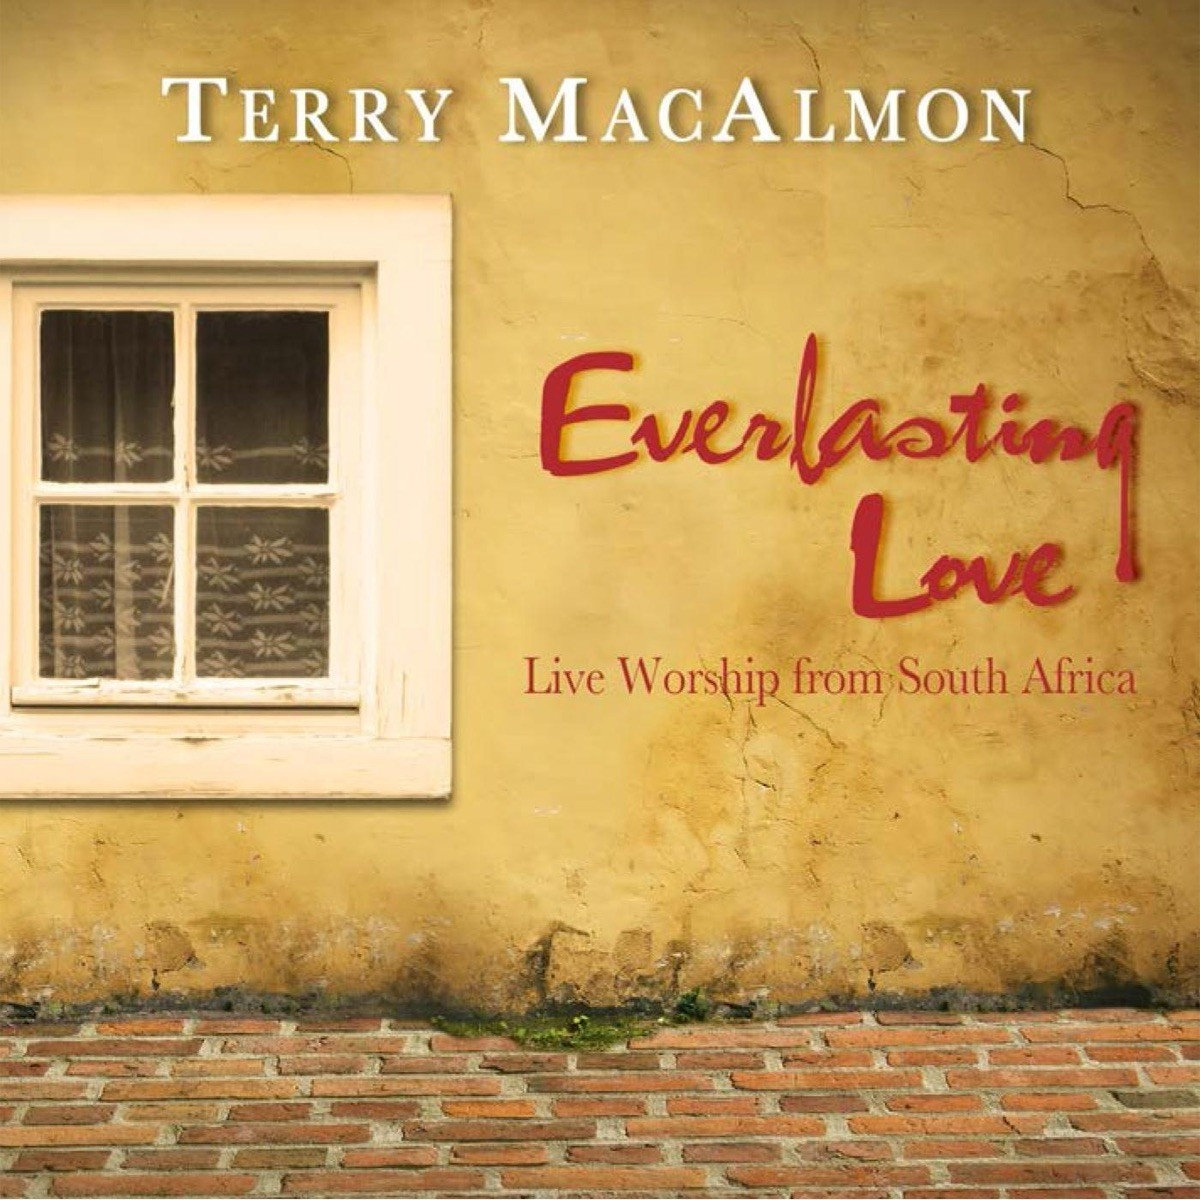 Terry MacAlmon - Everlasting Love (Live Worship from South Africa) CD - 712392722896